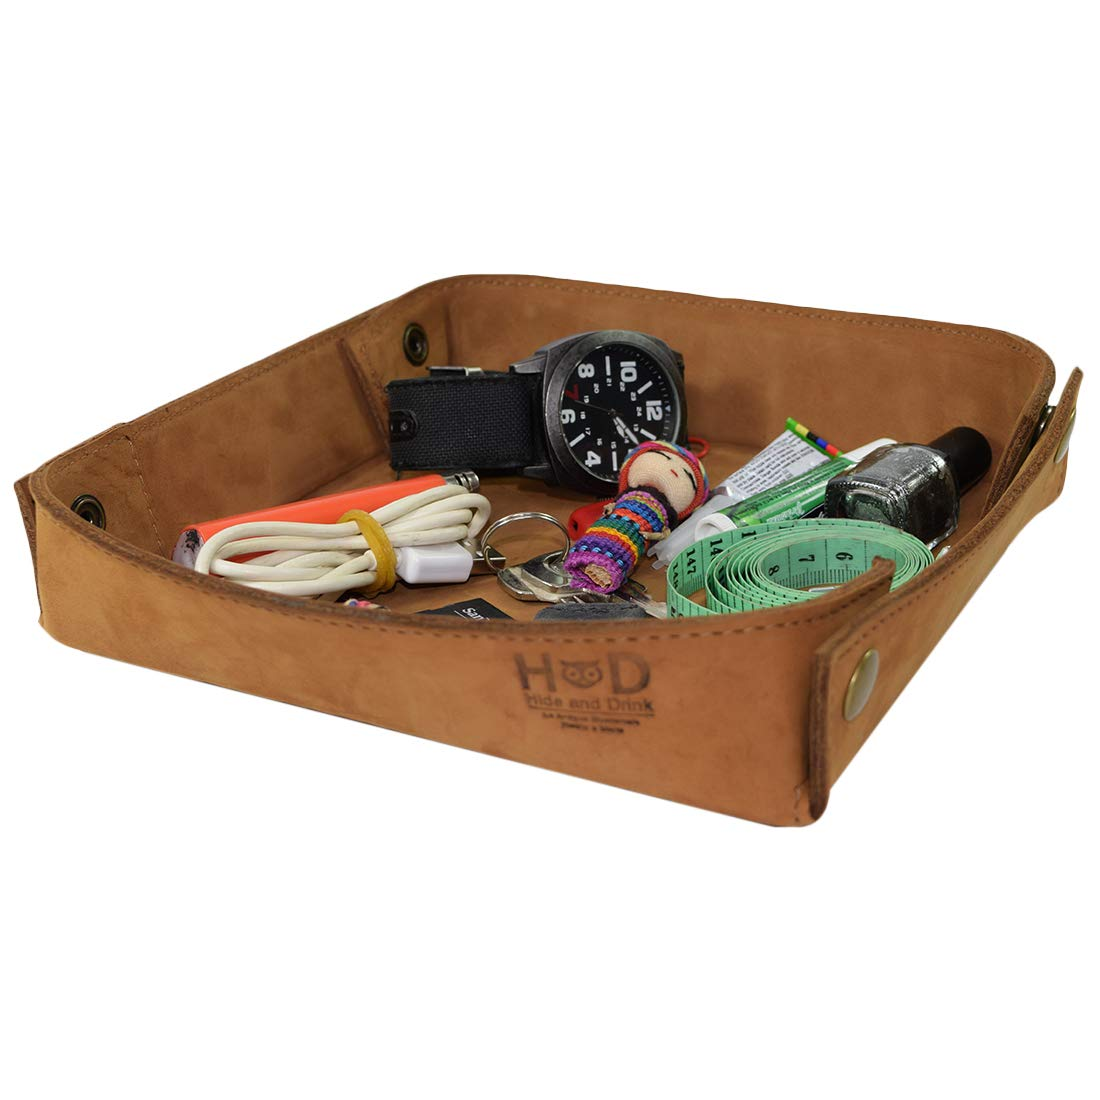 Hide & Drink, Leather Catchall Change Keys Coins Jewels Box Tray Big Storage Handmade Includes 101 Year Warranty :: Toffee Suede